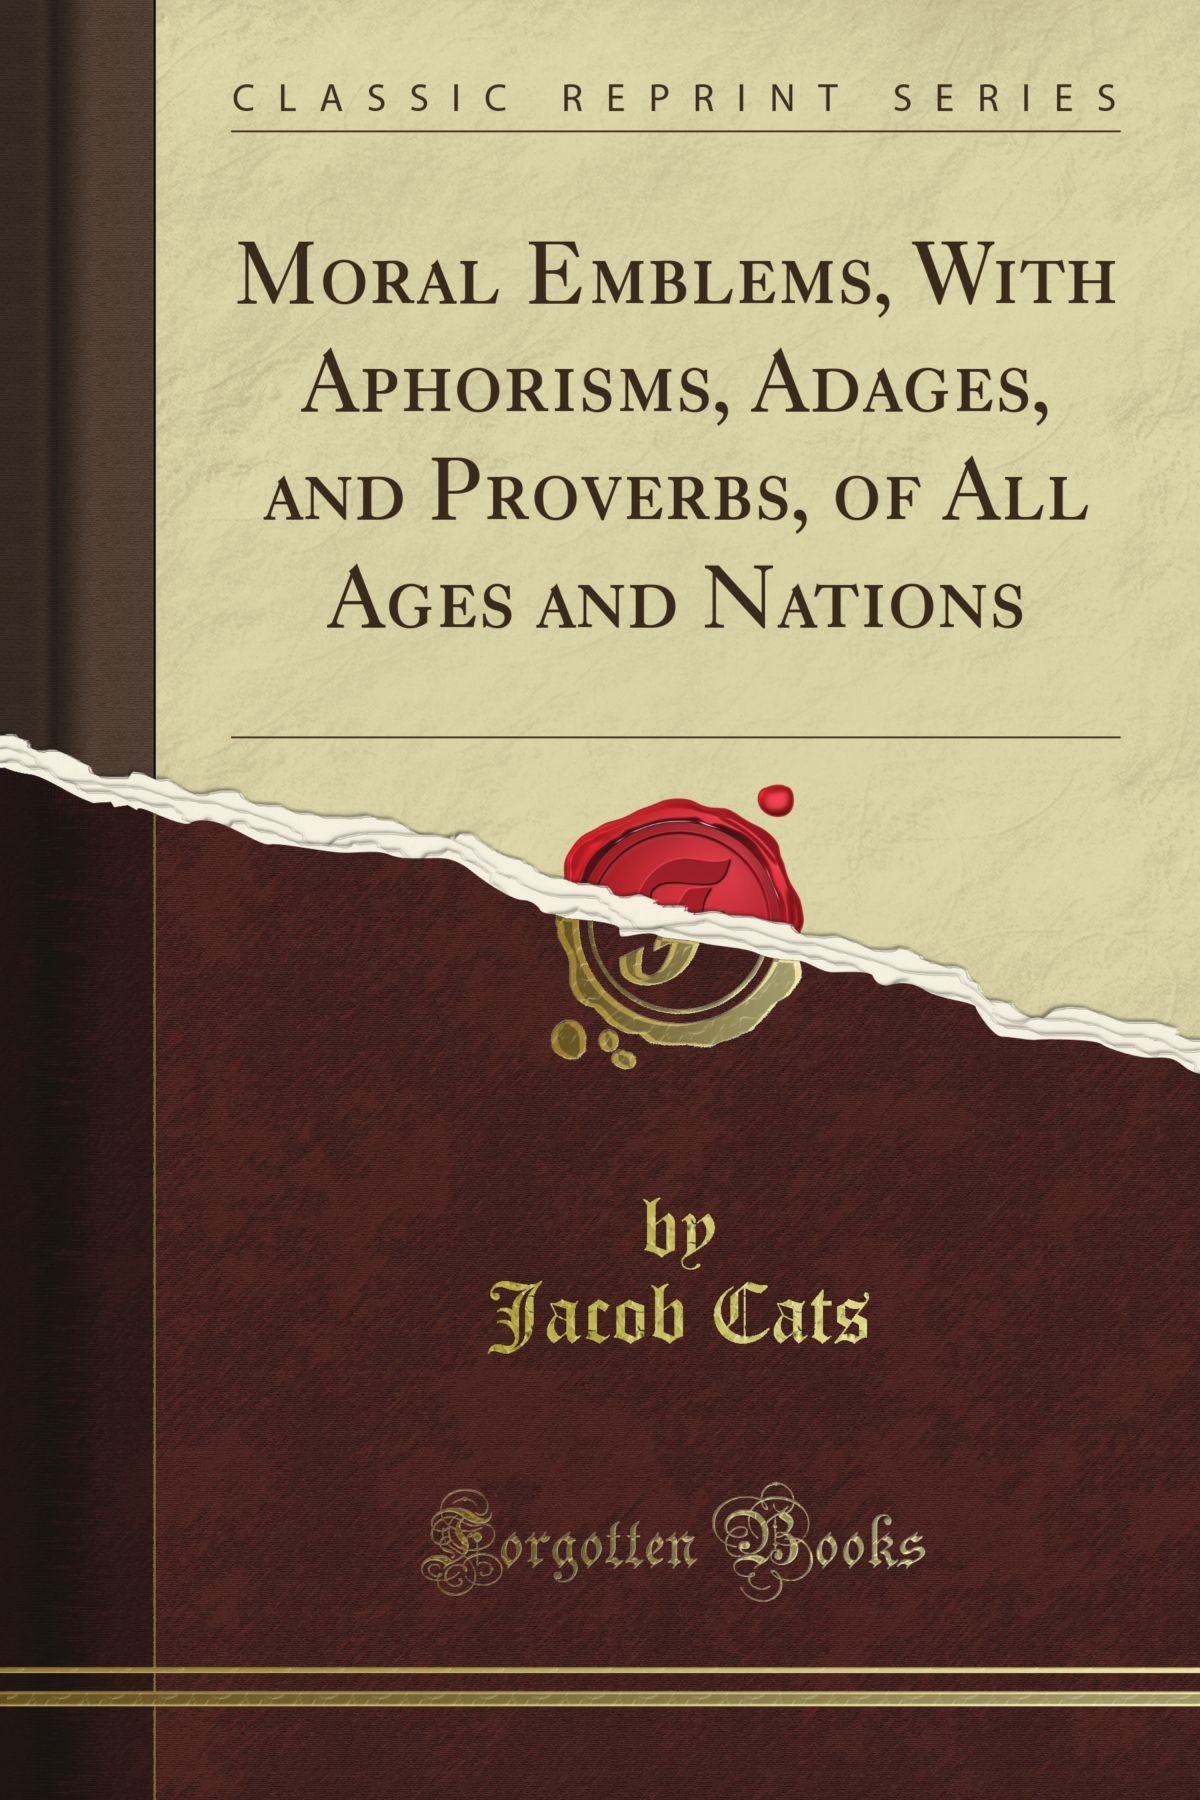 Read Online Moral Emblems, With Aphorisms, Adages, and Proverbs, of All Ages and Nations (Classic Reprint) PDF